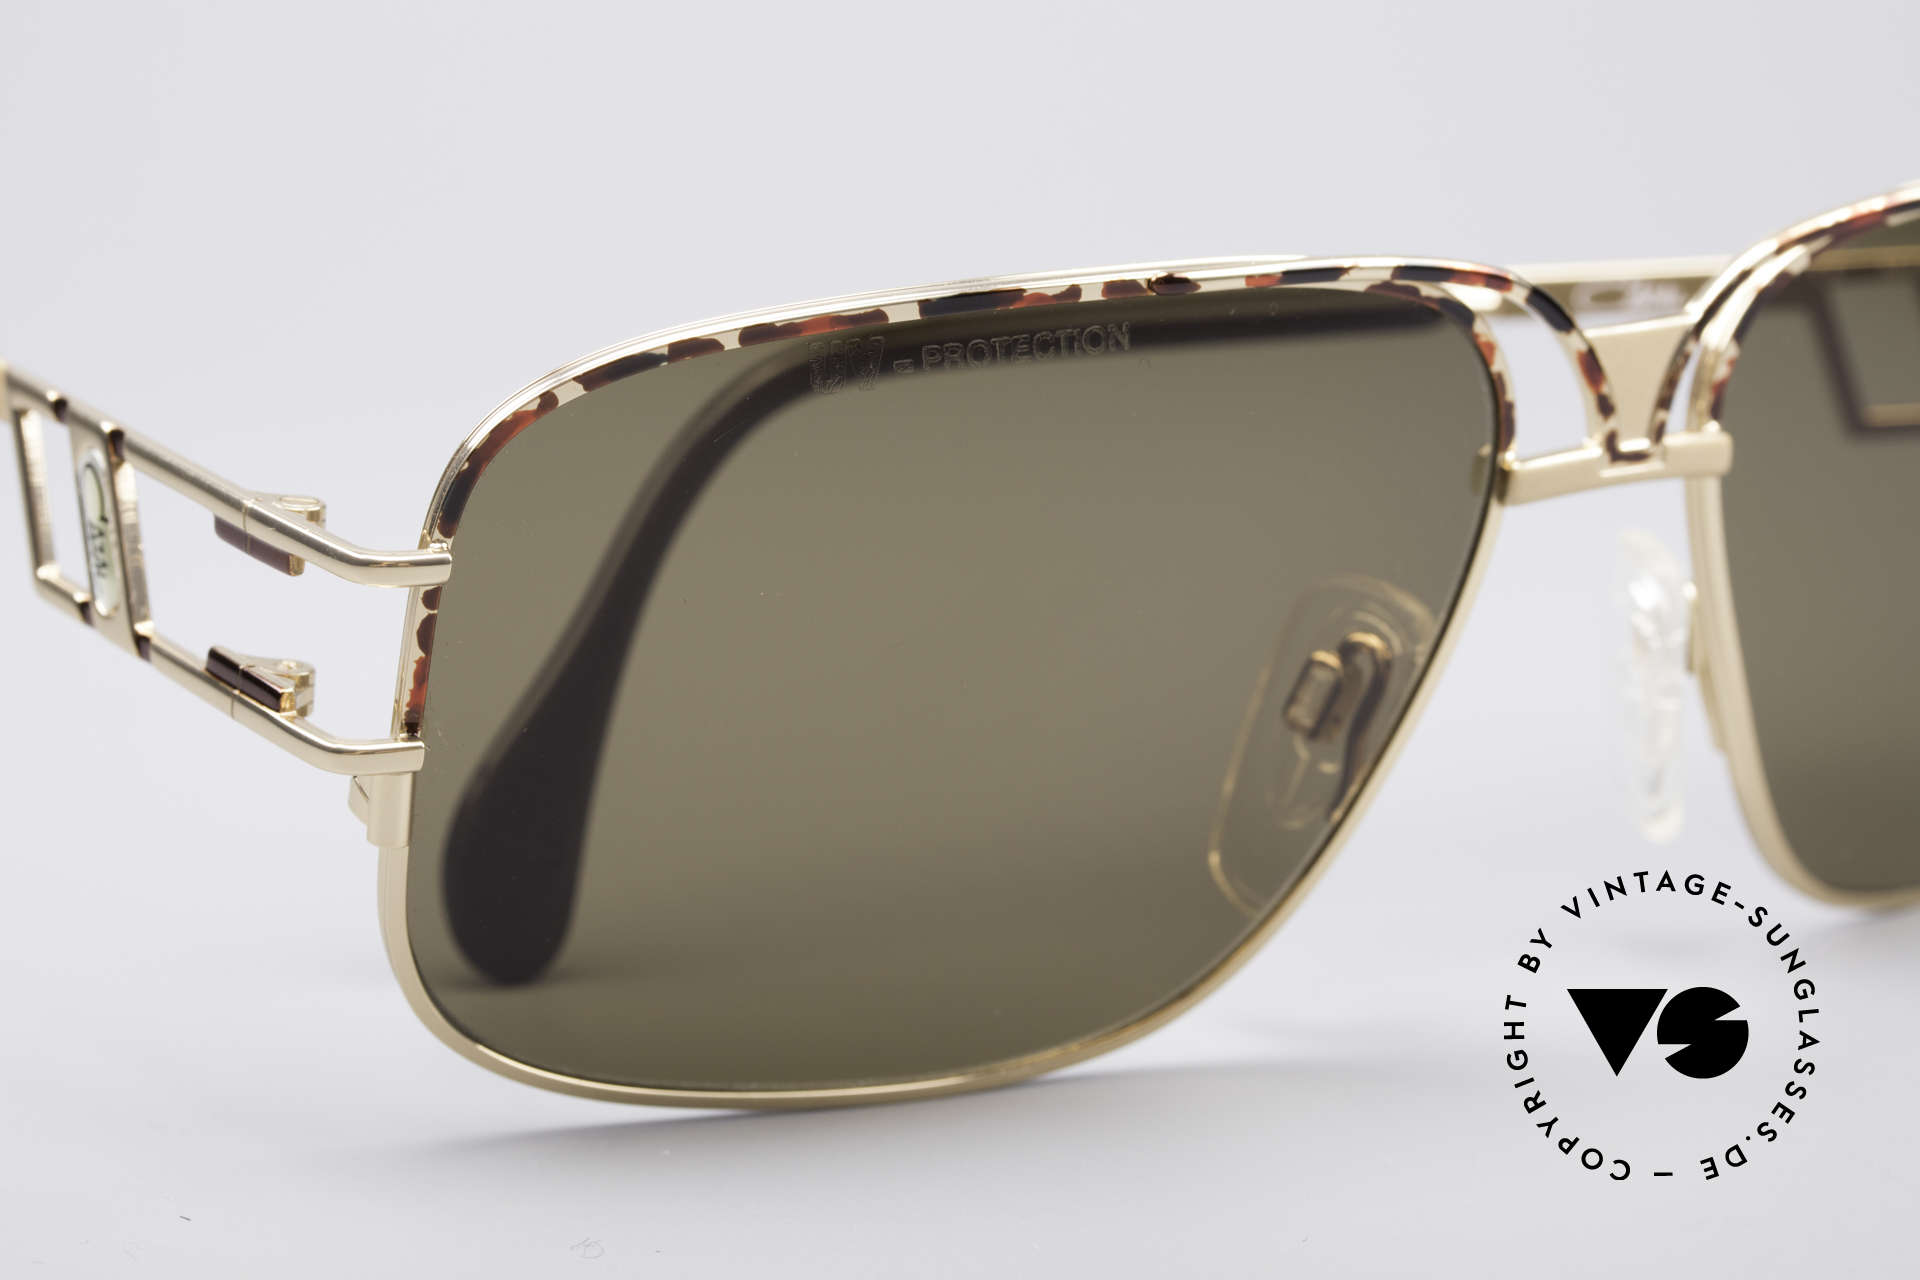 Cazal 971 Ultra Rare Designer Shades, NO RETRO SHADES, but a 20 years old original; XL size, Made for Men